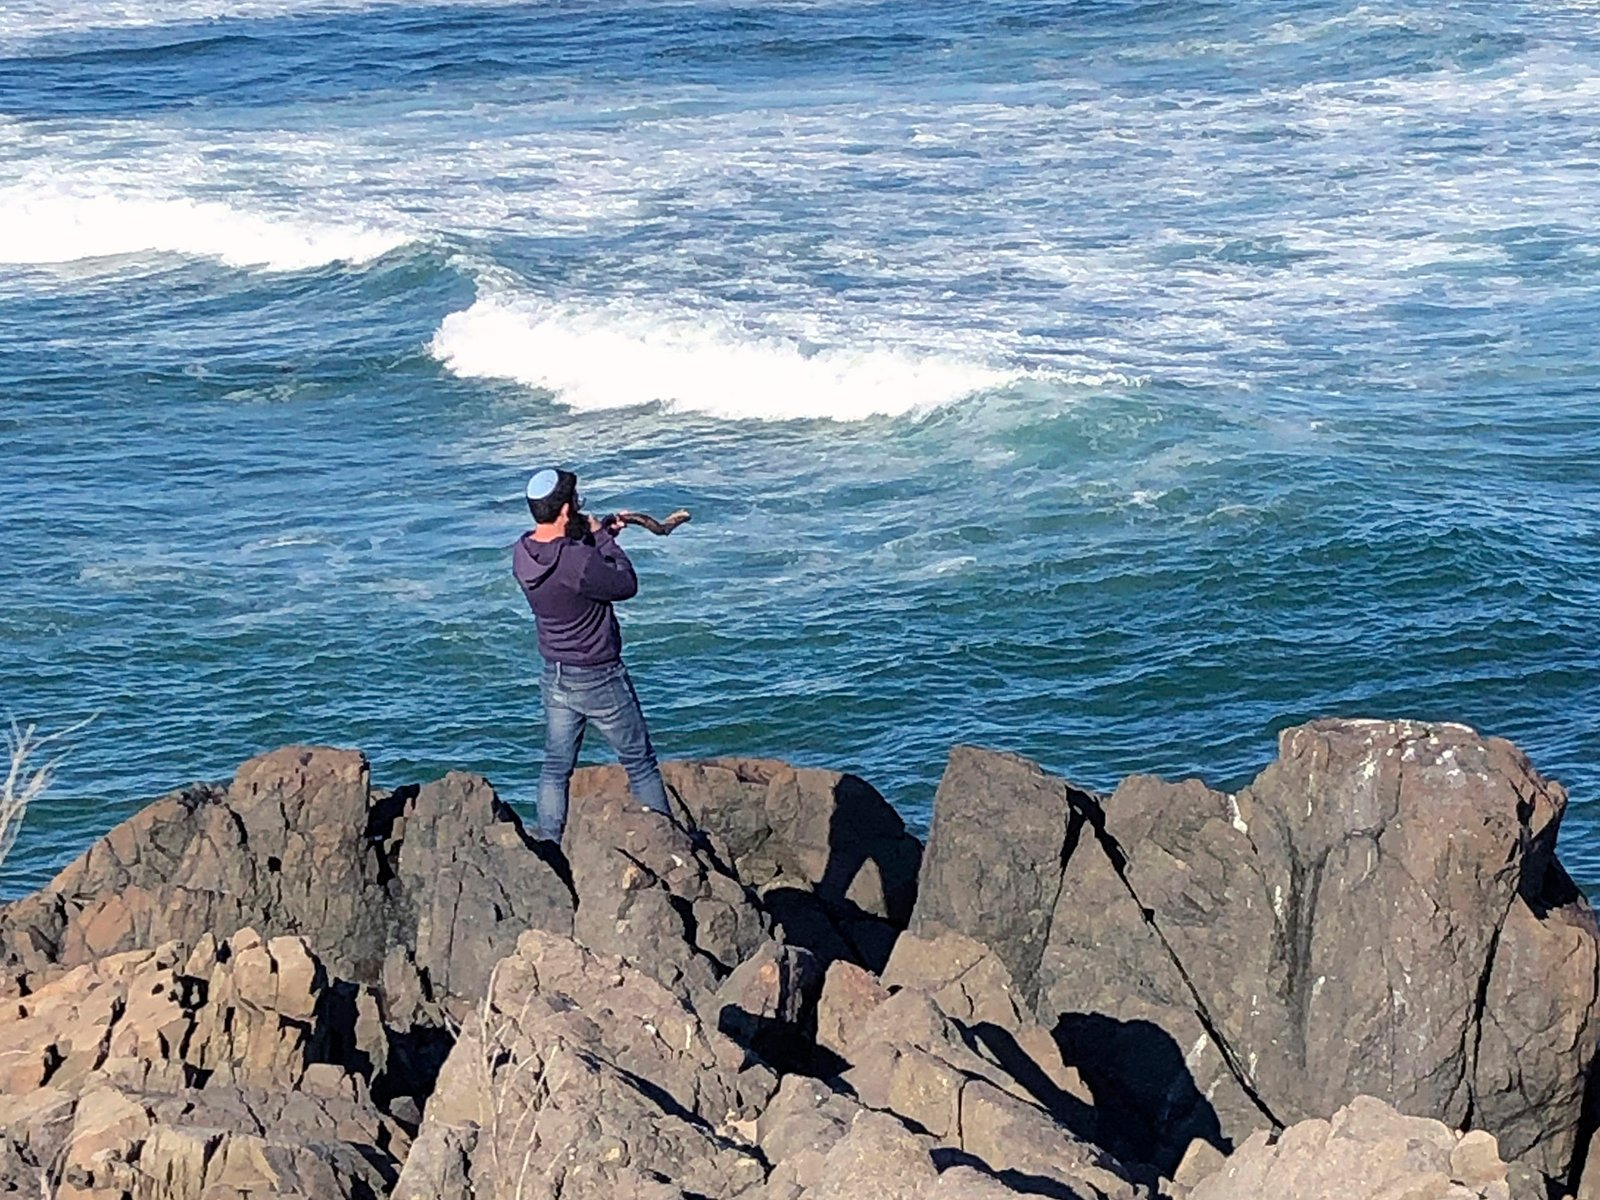 A man blows a shofar to celebrate the end of Rosh Hashanah on the Marginal Way, Sunday, Sept. 20, 2020 in Ogunquit, Maine. (AP Photo/Pat Eaton-Robb)